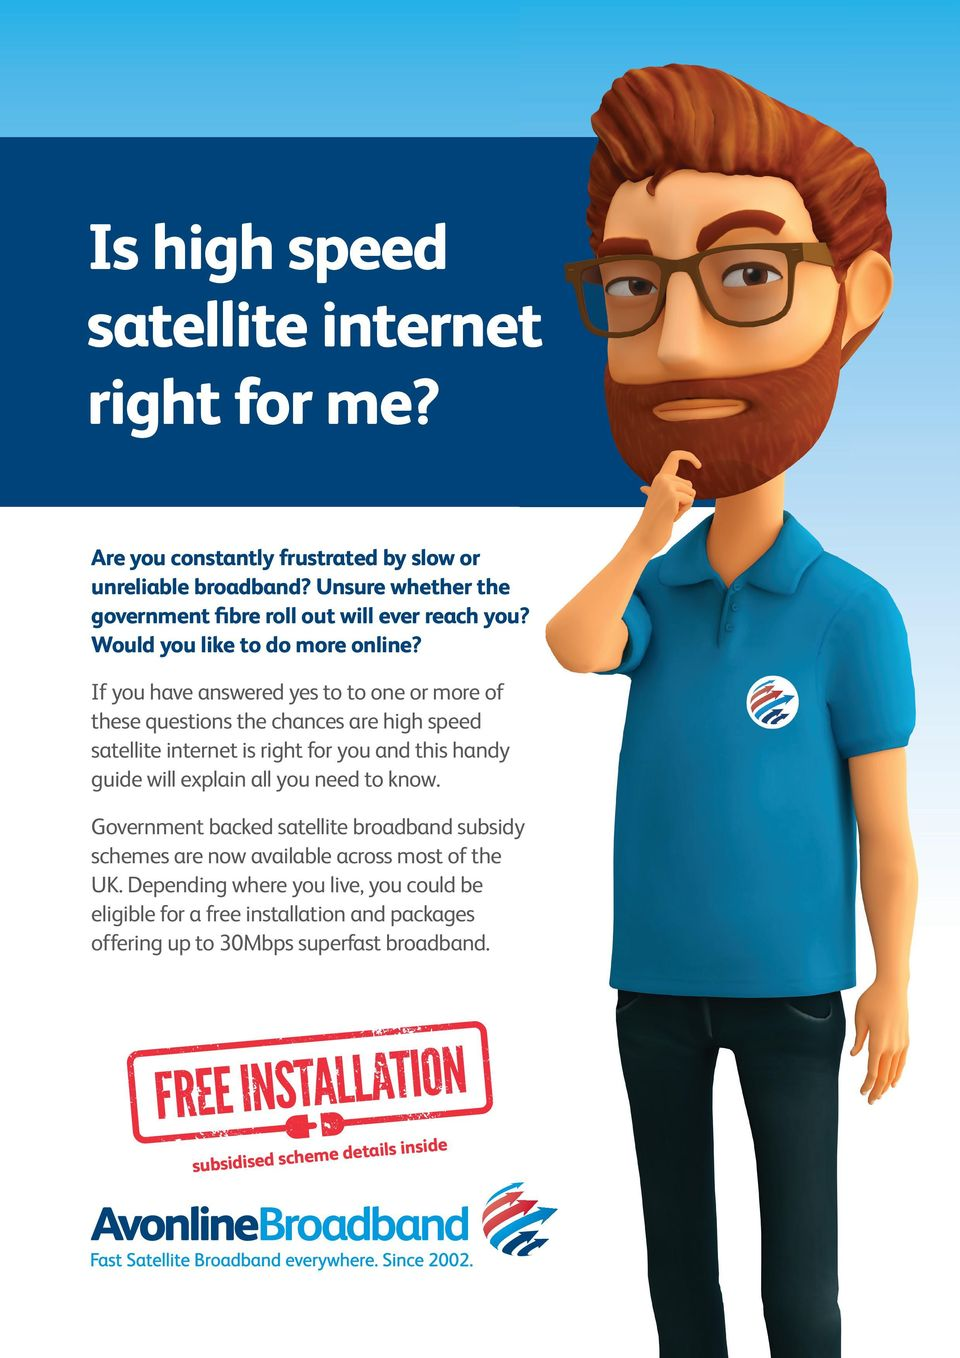 If you have answered yes to to one or more of these questions the chances are high speed satellite internet is right for you and this handy guide will explain